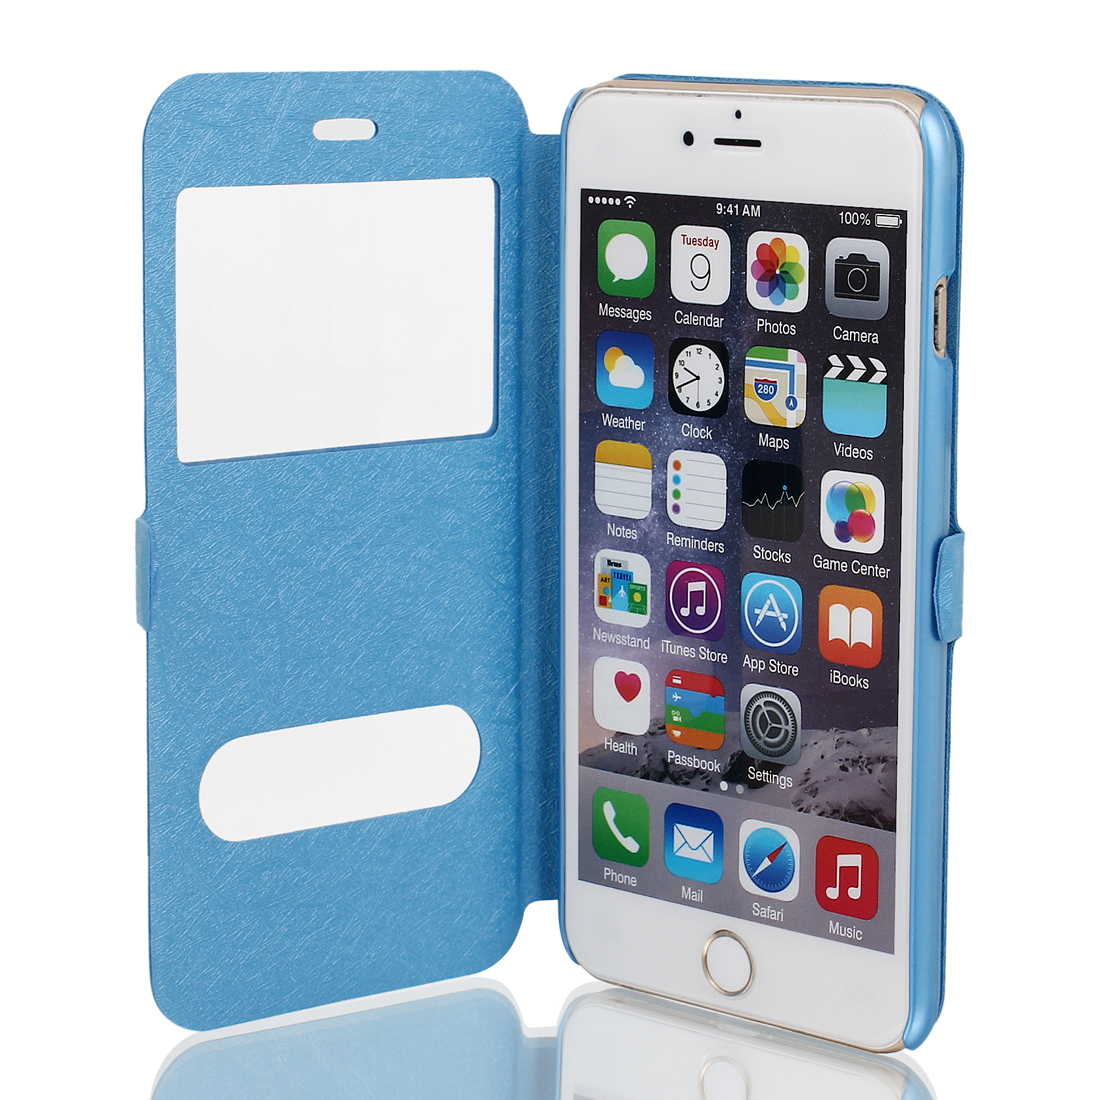 Magnetic Flip Faux Leather Pouch Case Cover Skin Blue for iPhone 6 Plus 5.5""